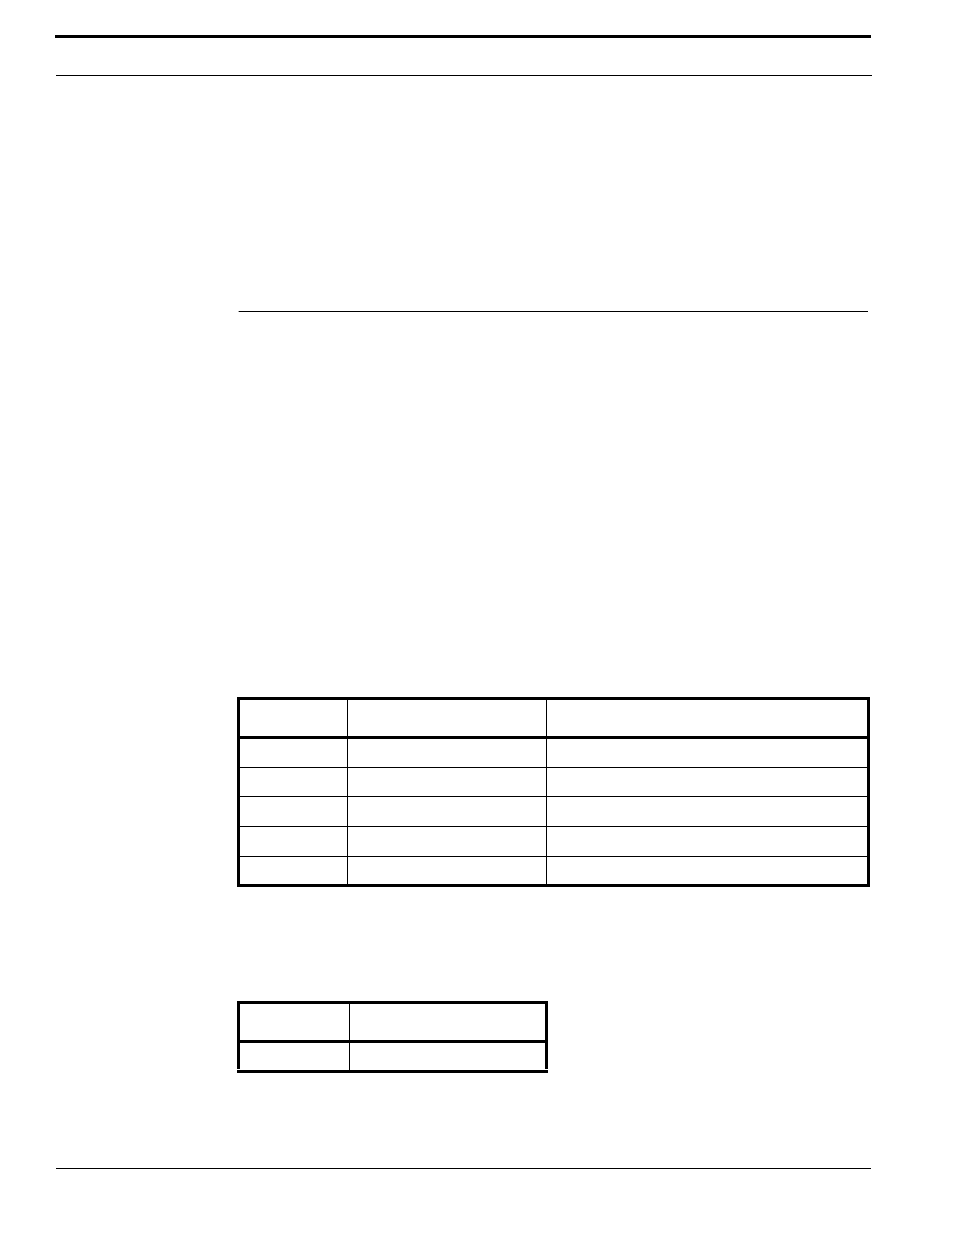 Troubleshooting schedules, Error, warning and event messages